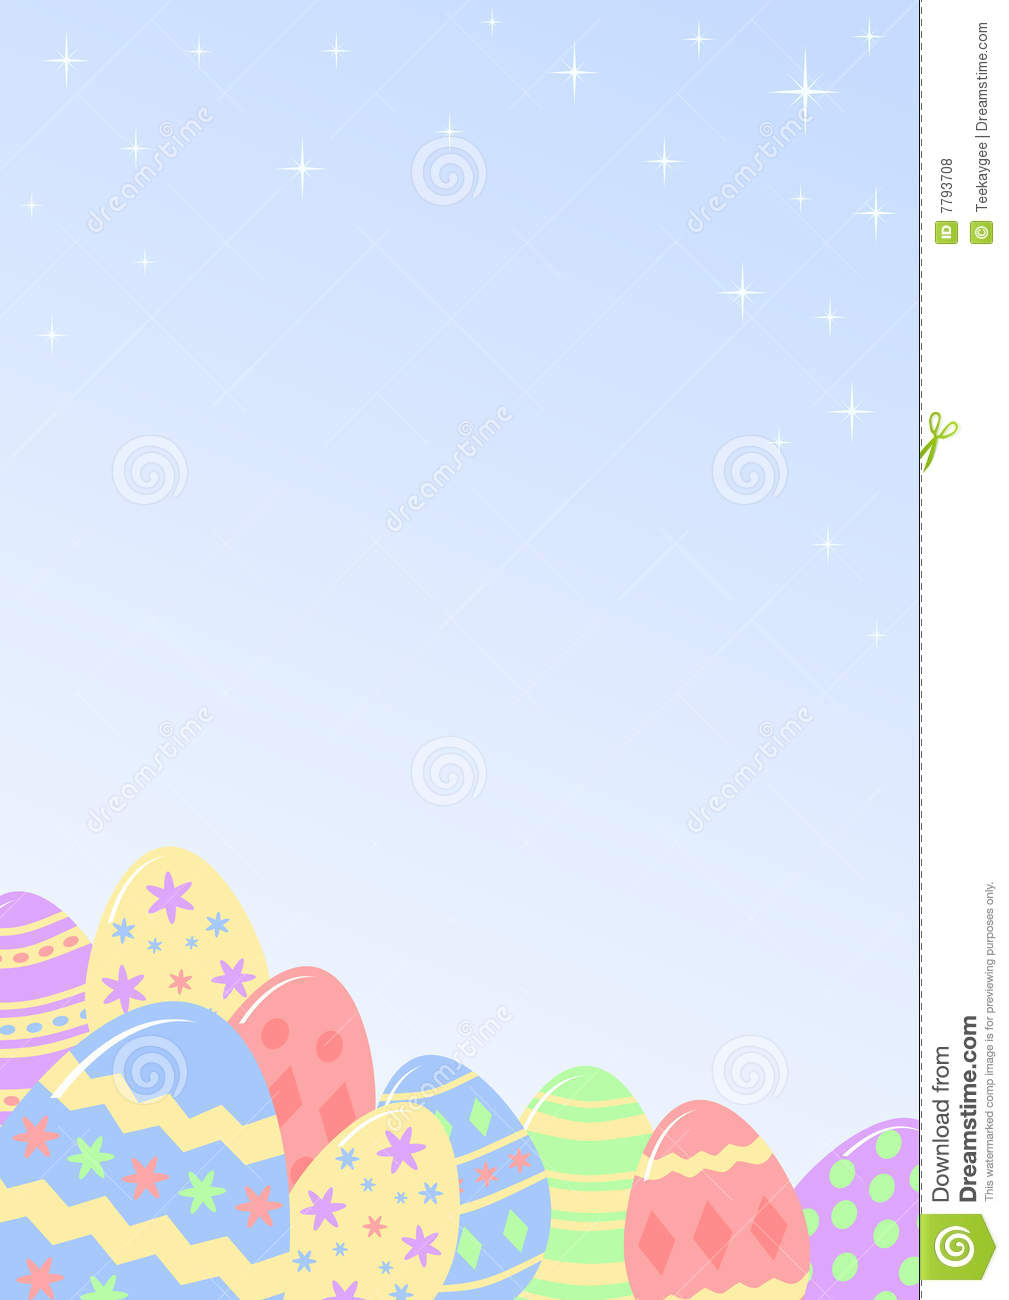 Easter Backgrounds Images HD Easter Images 1009x1300